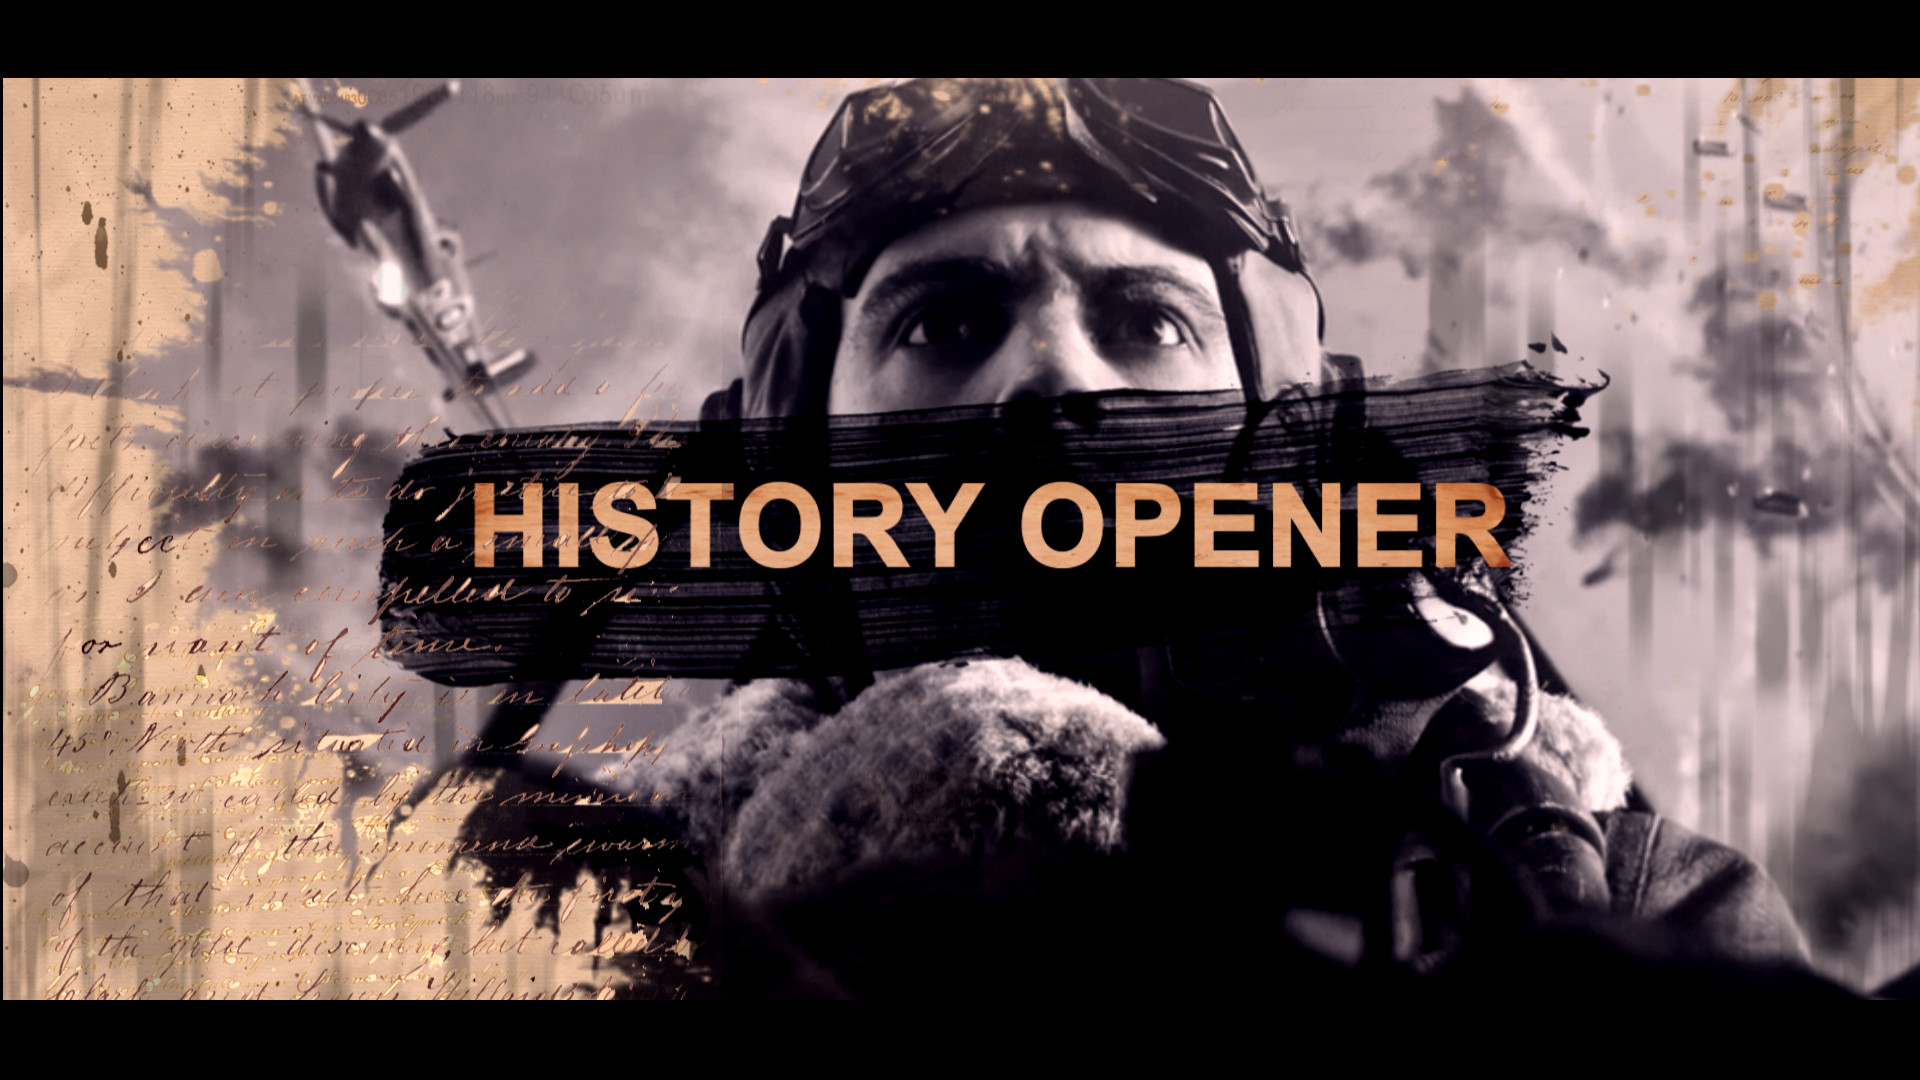 History Opener (Abstract)